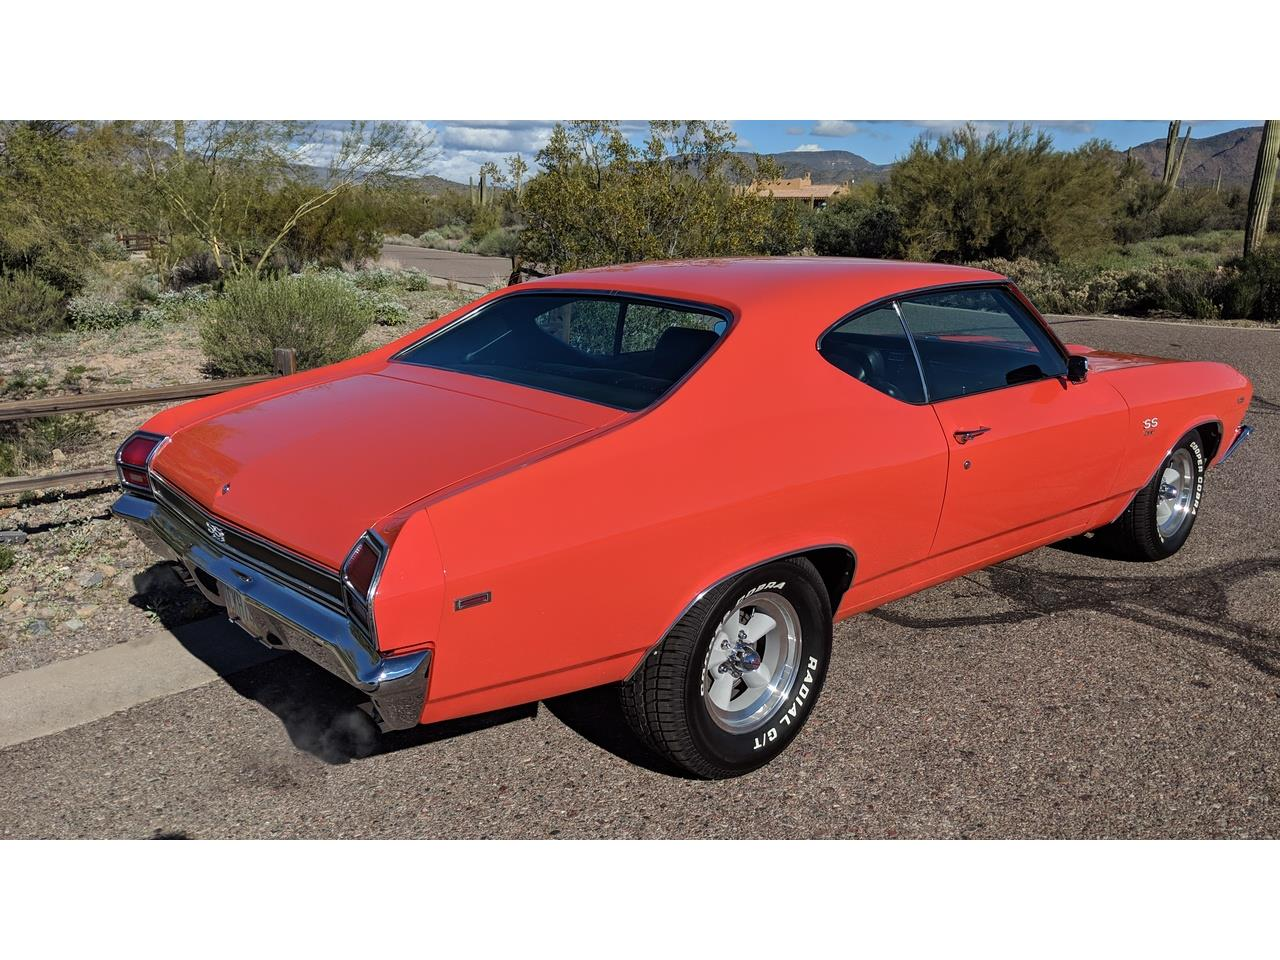 Large Picture of 1969 Chevrolet Chevelle SS located in CAVE CREEK Arizona - $54,000.00 Offered by a Private Seller - PEBN